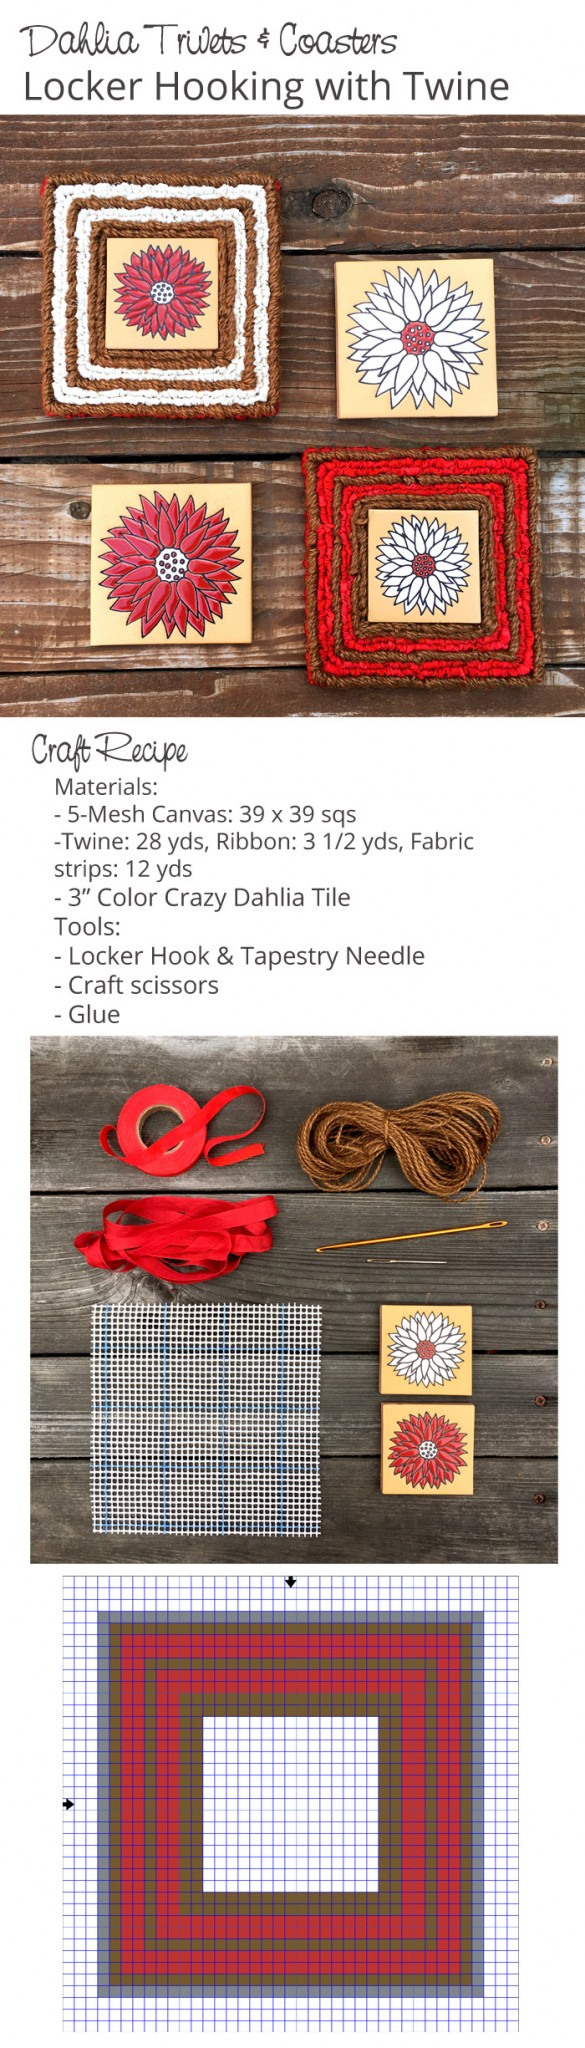 gocolorcrazy-locker-hooking-trivet-dahlia-recipe-twine-theresa-pulido-7